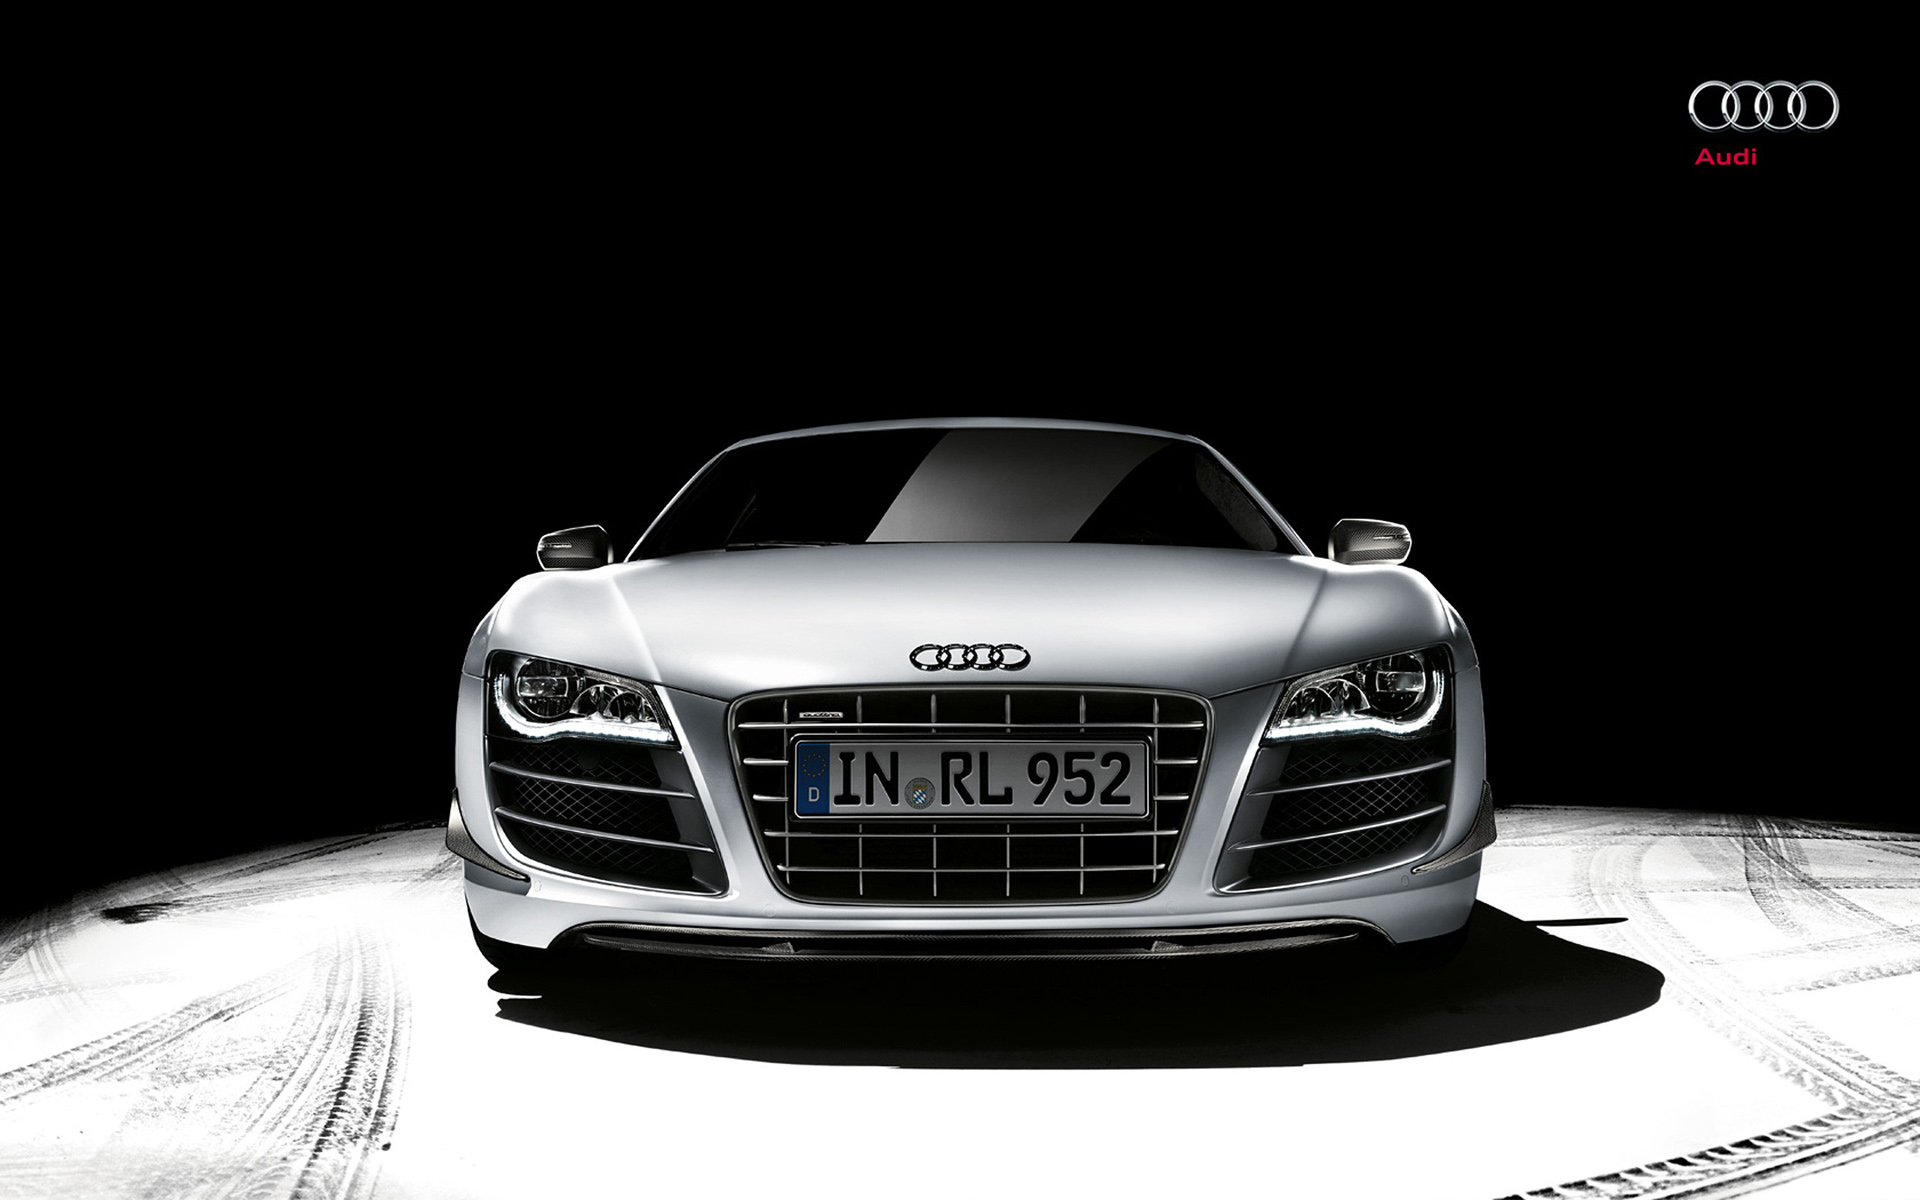 coolest hd wallpapers audi - photo #32